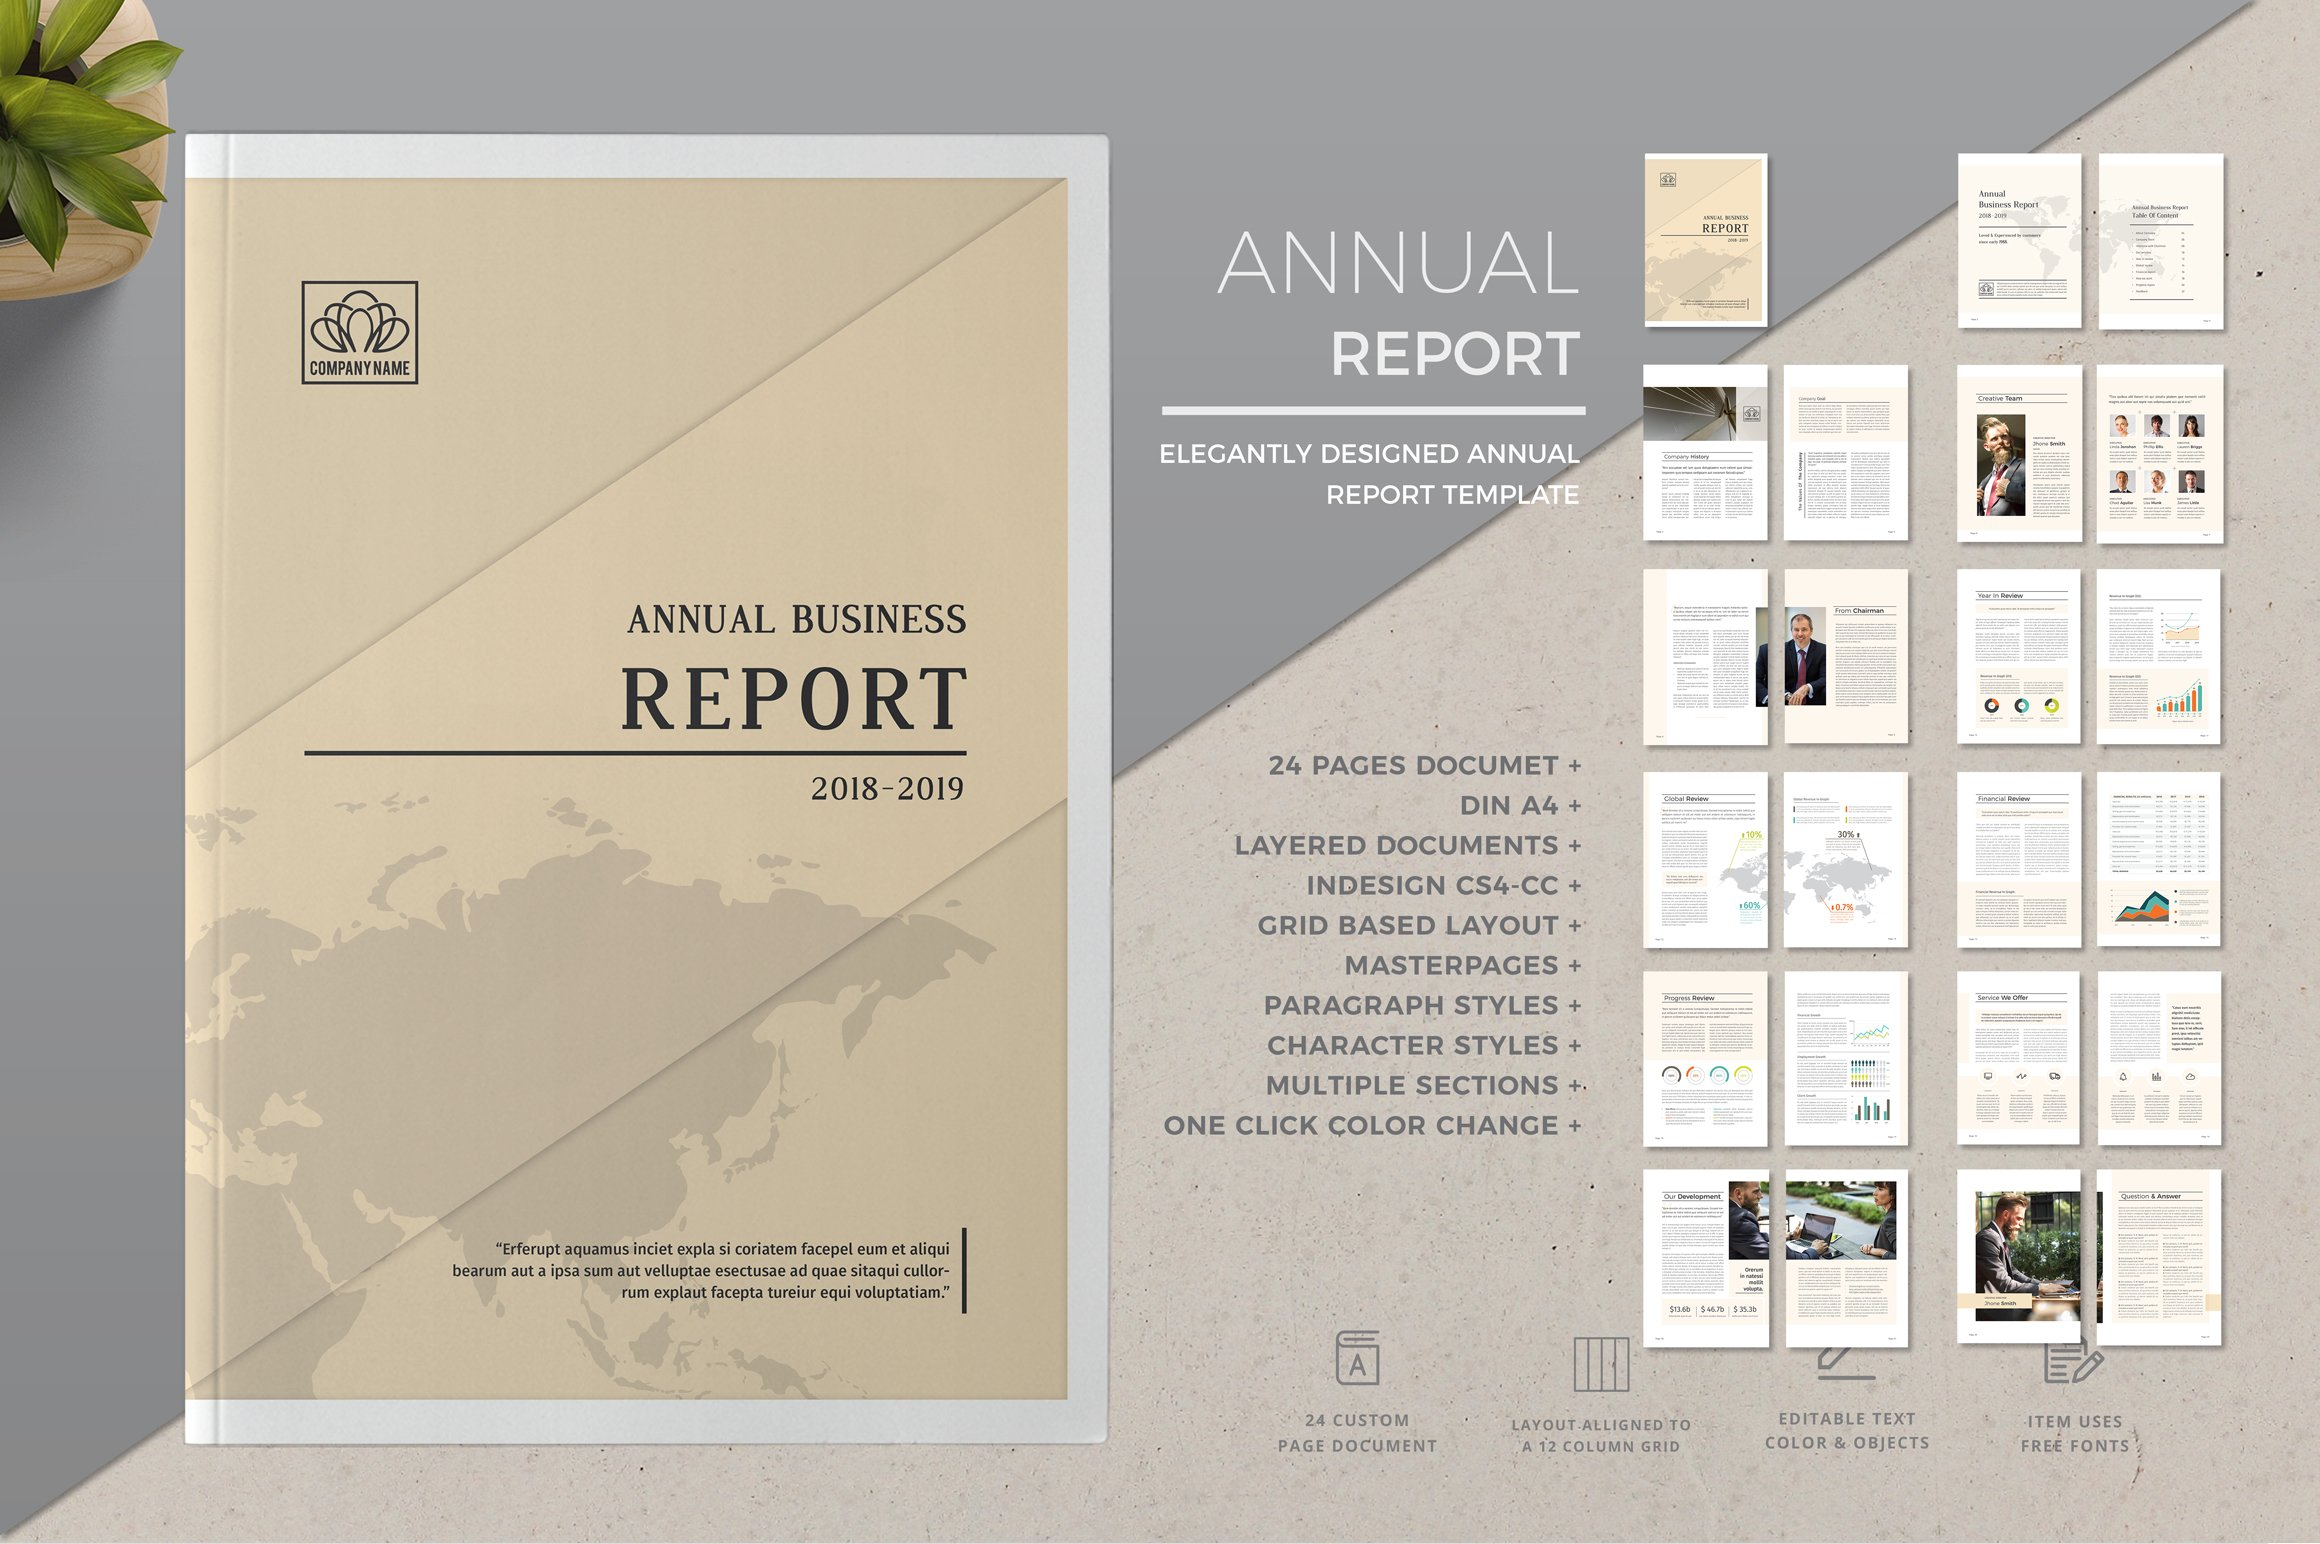 Indesign layout annual report Photos, Graphics, Fonts, Themes ...